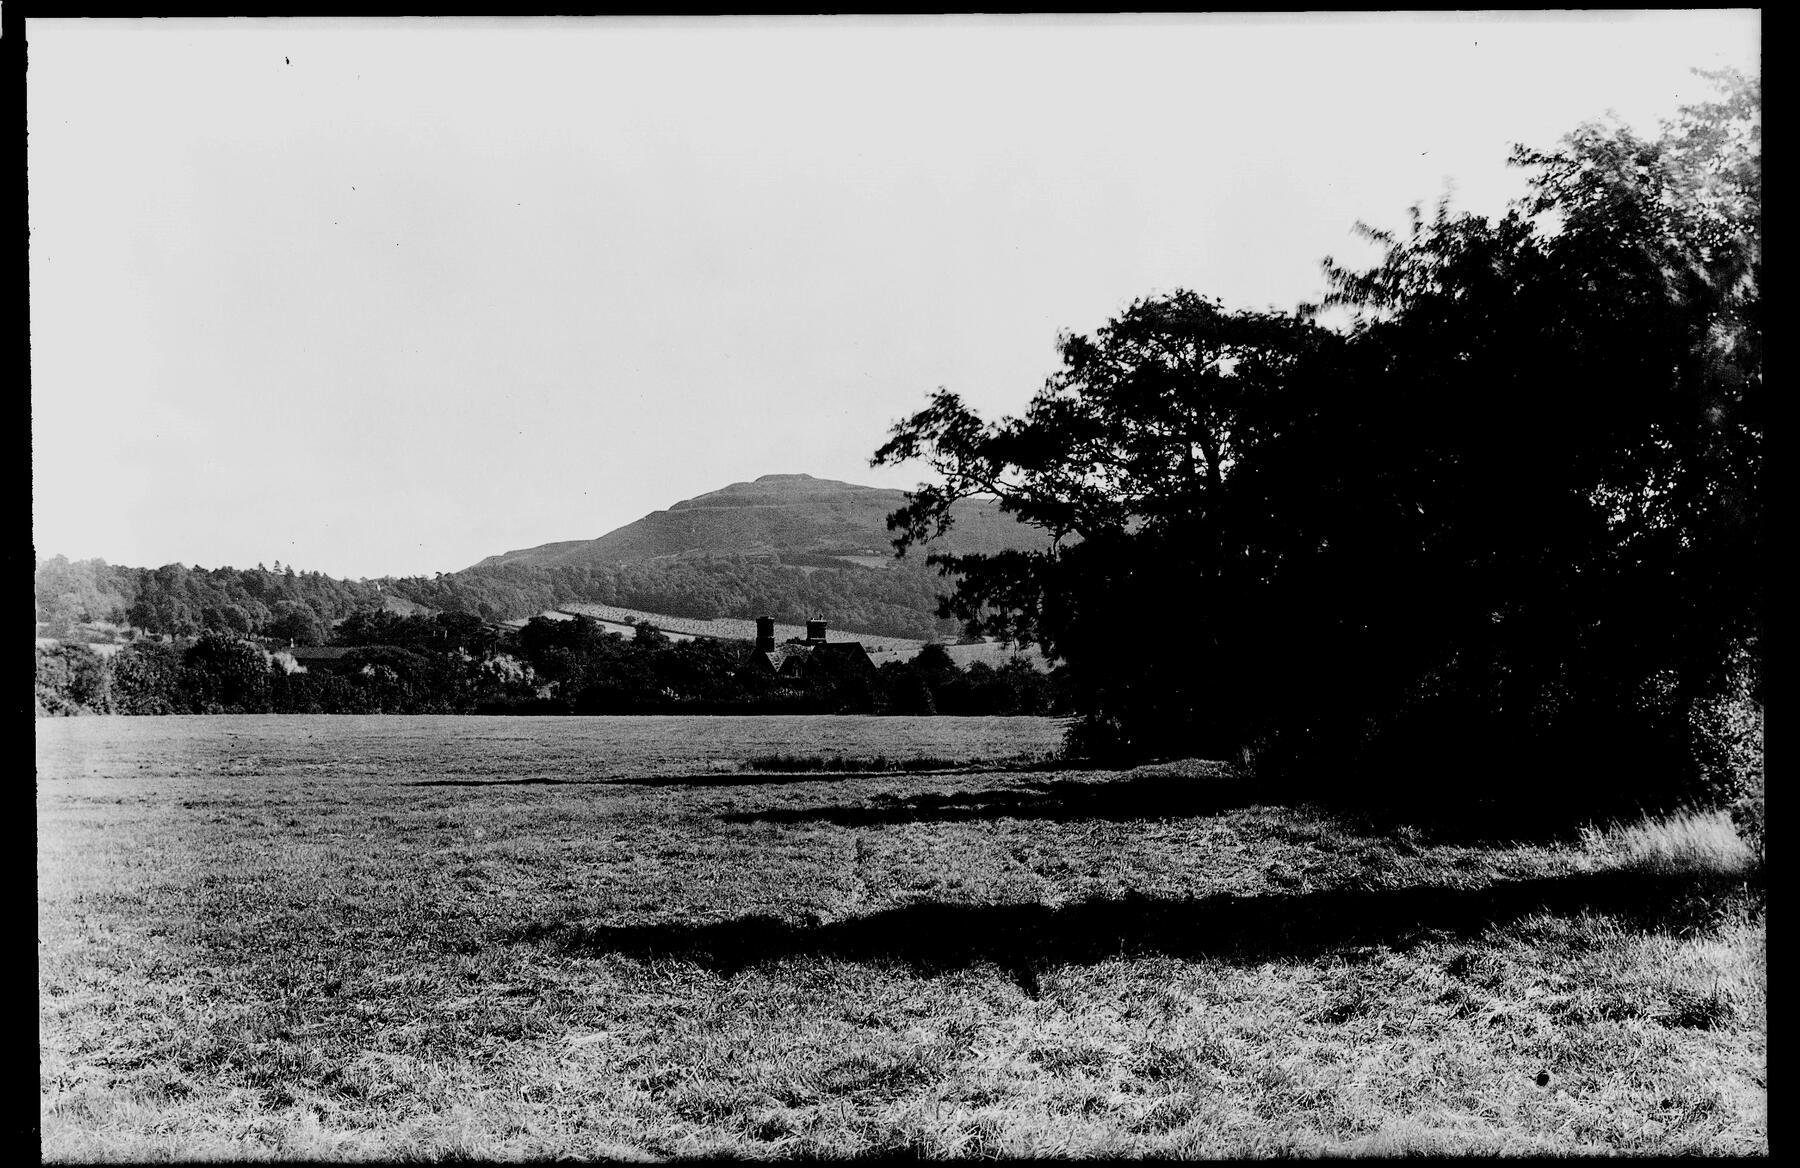 Alfred Watkins' photo of Colwall Landscape